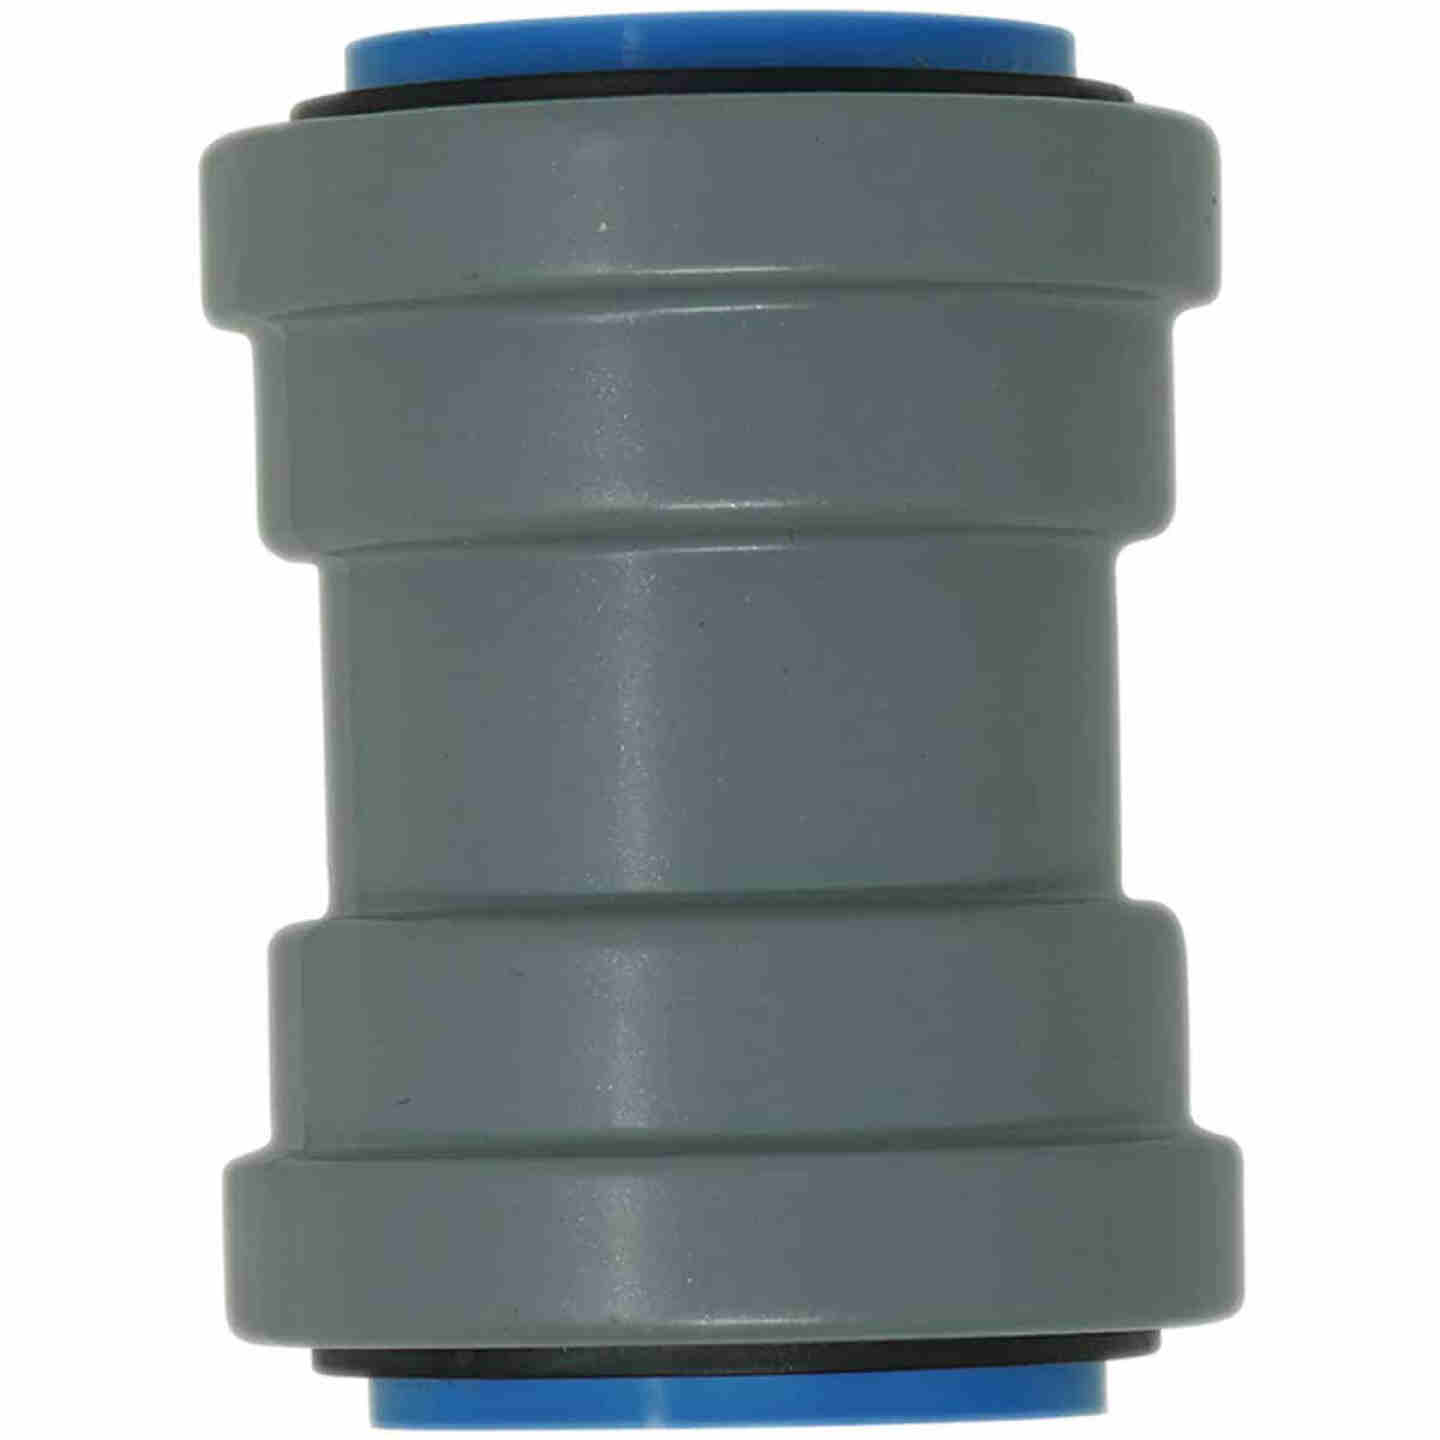 Southwire SimPush 1/2 In. EMT Push-To-Install Watertight Conduit Coupling Image 1